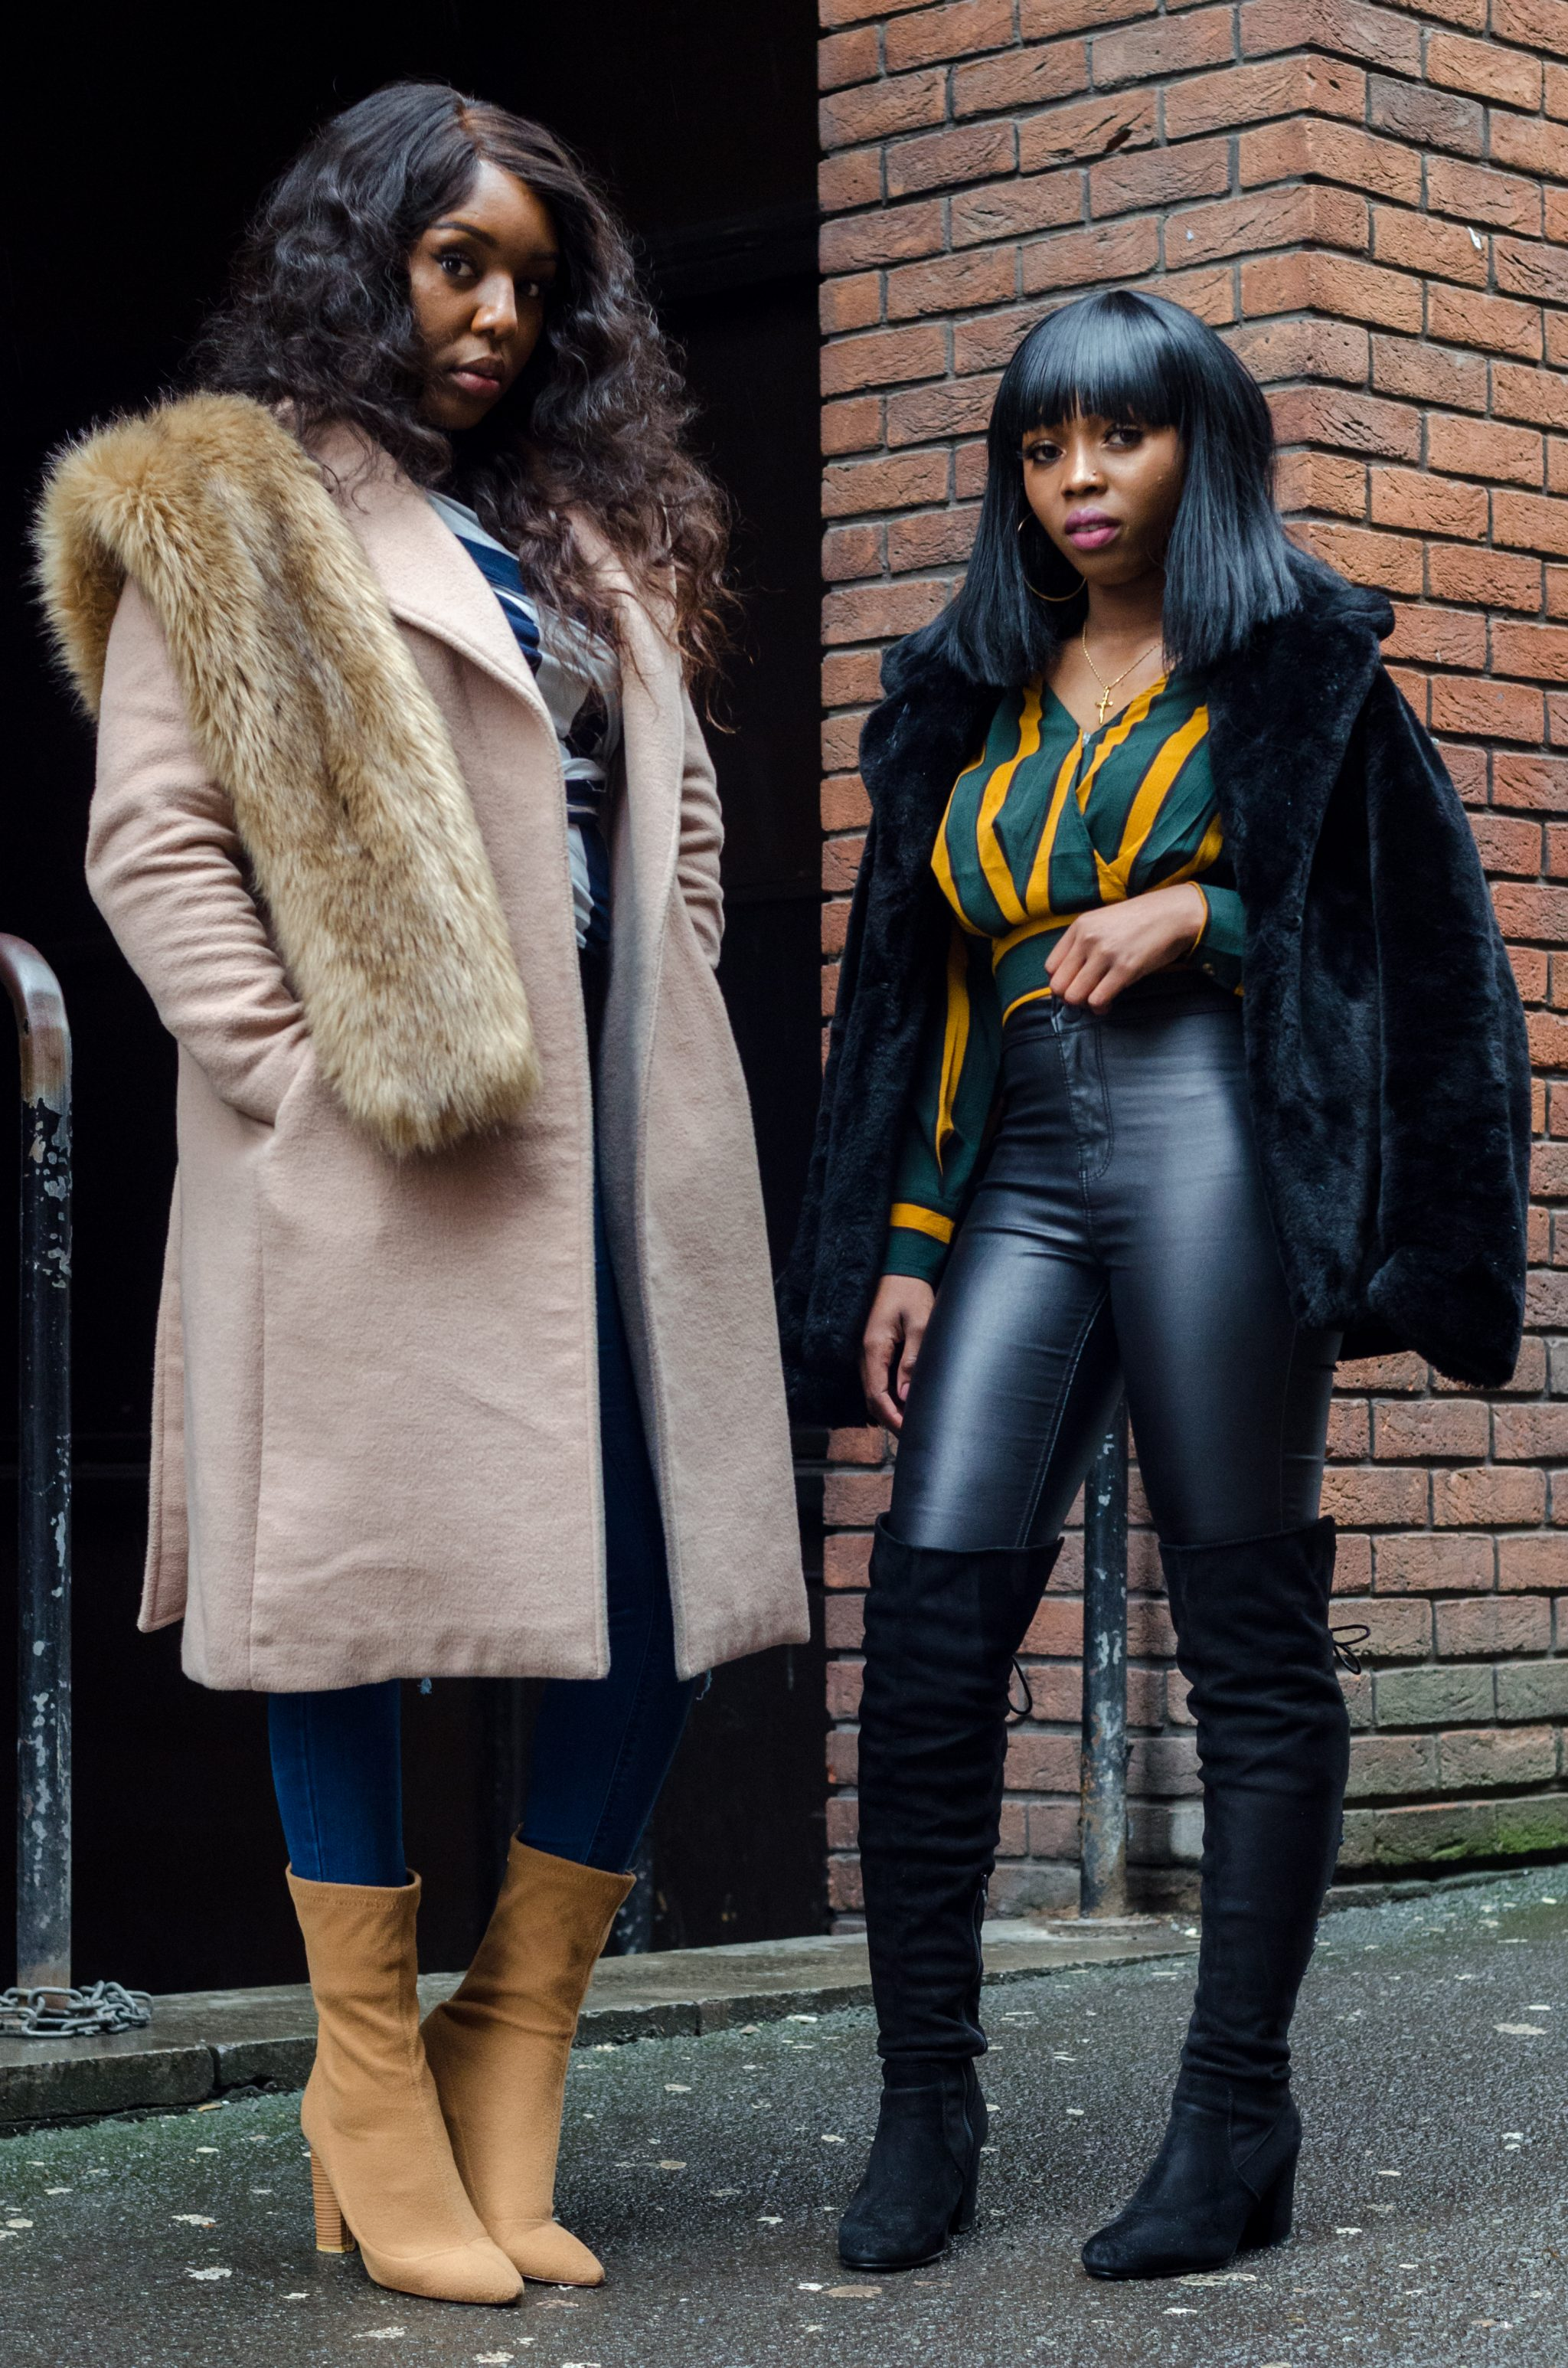 Manchester Fashion Bloggers